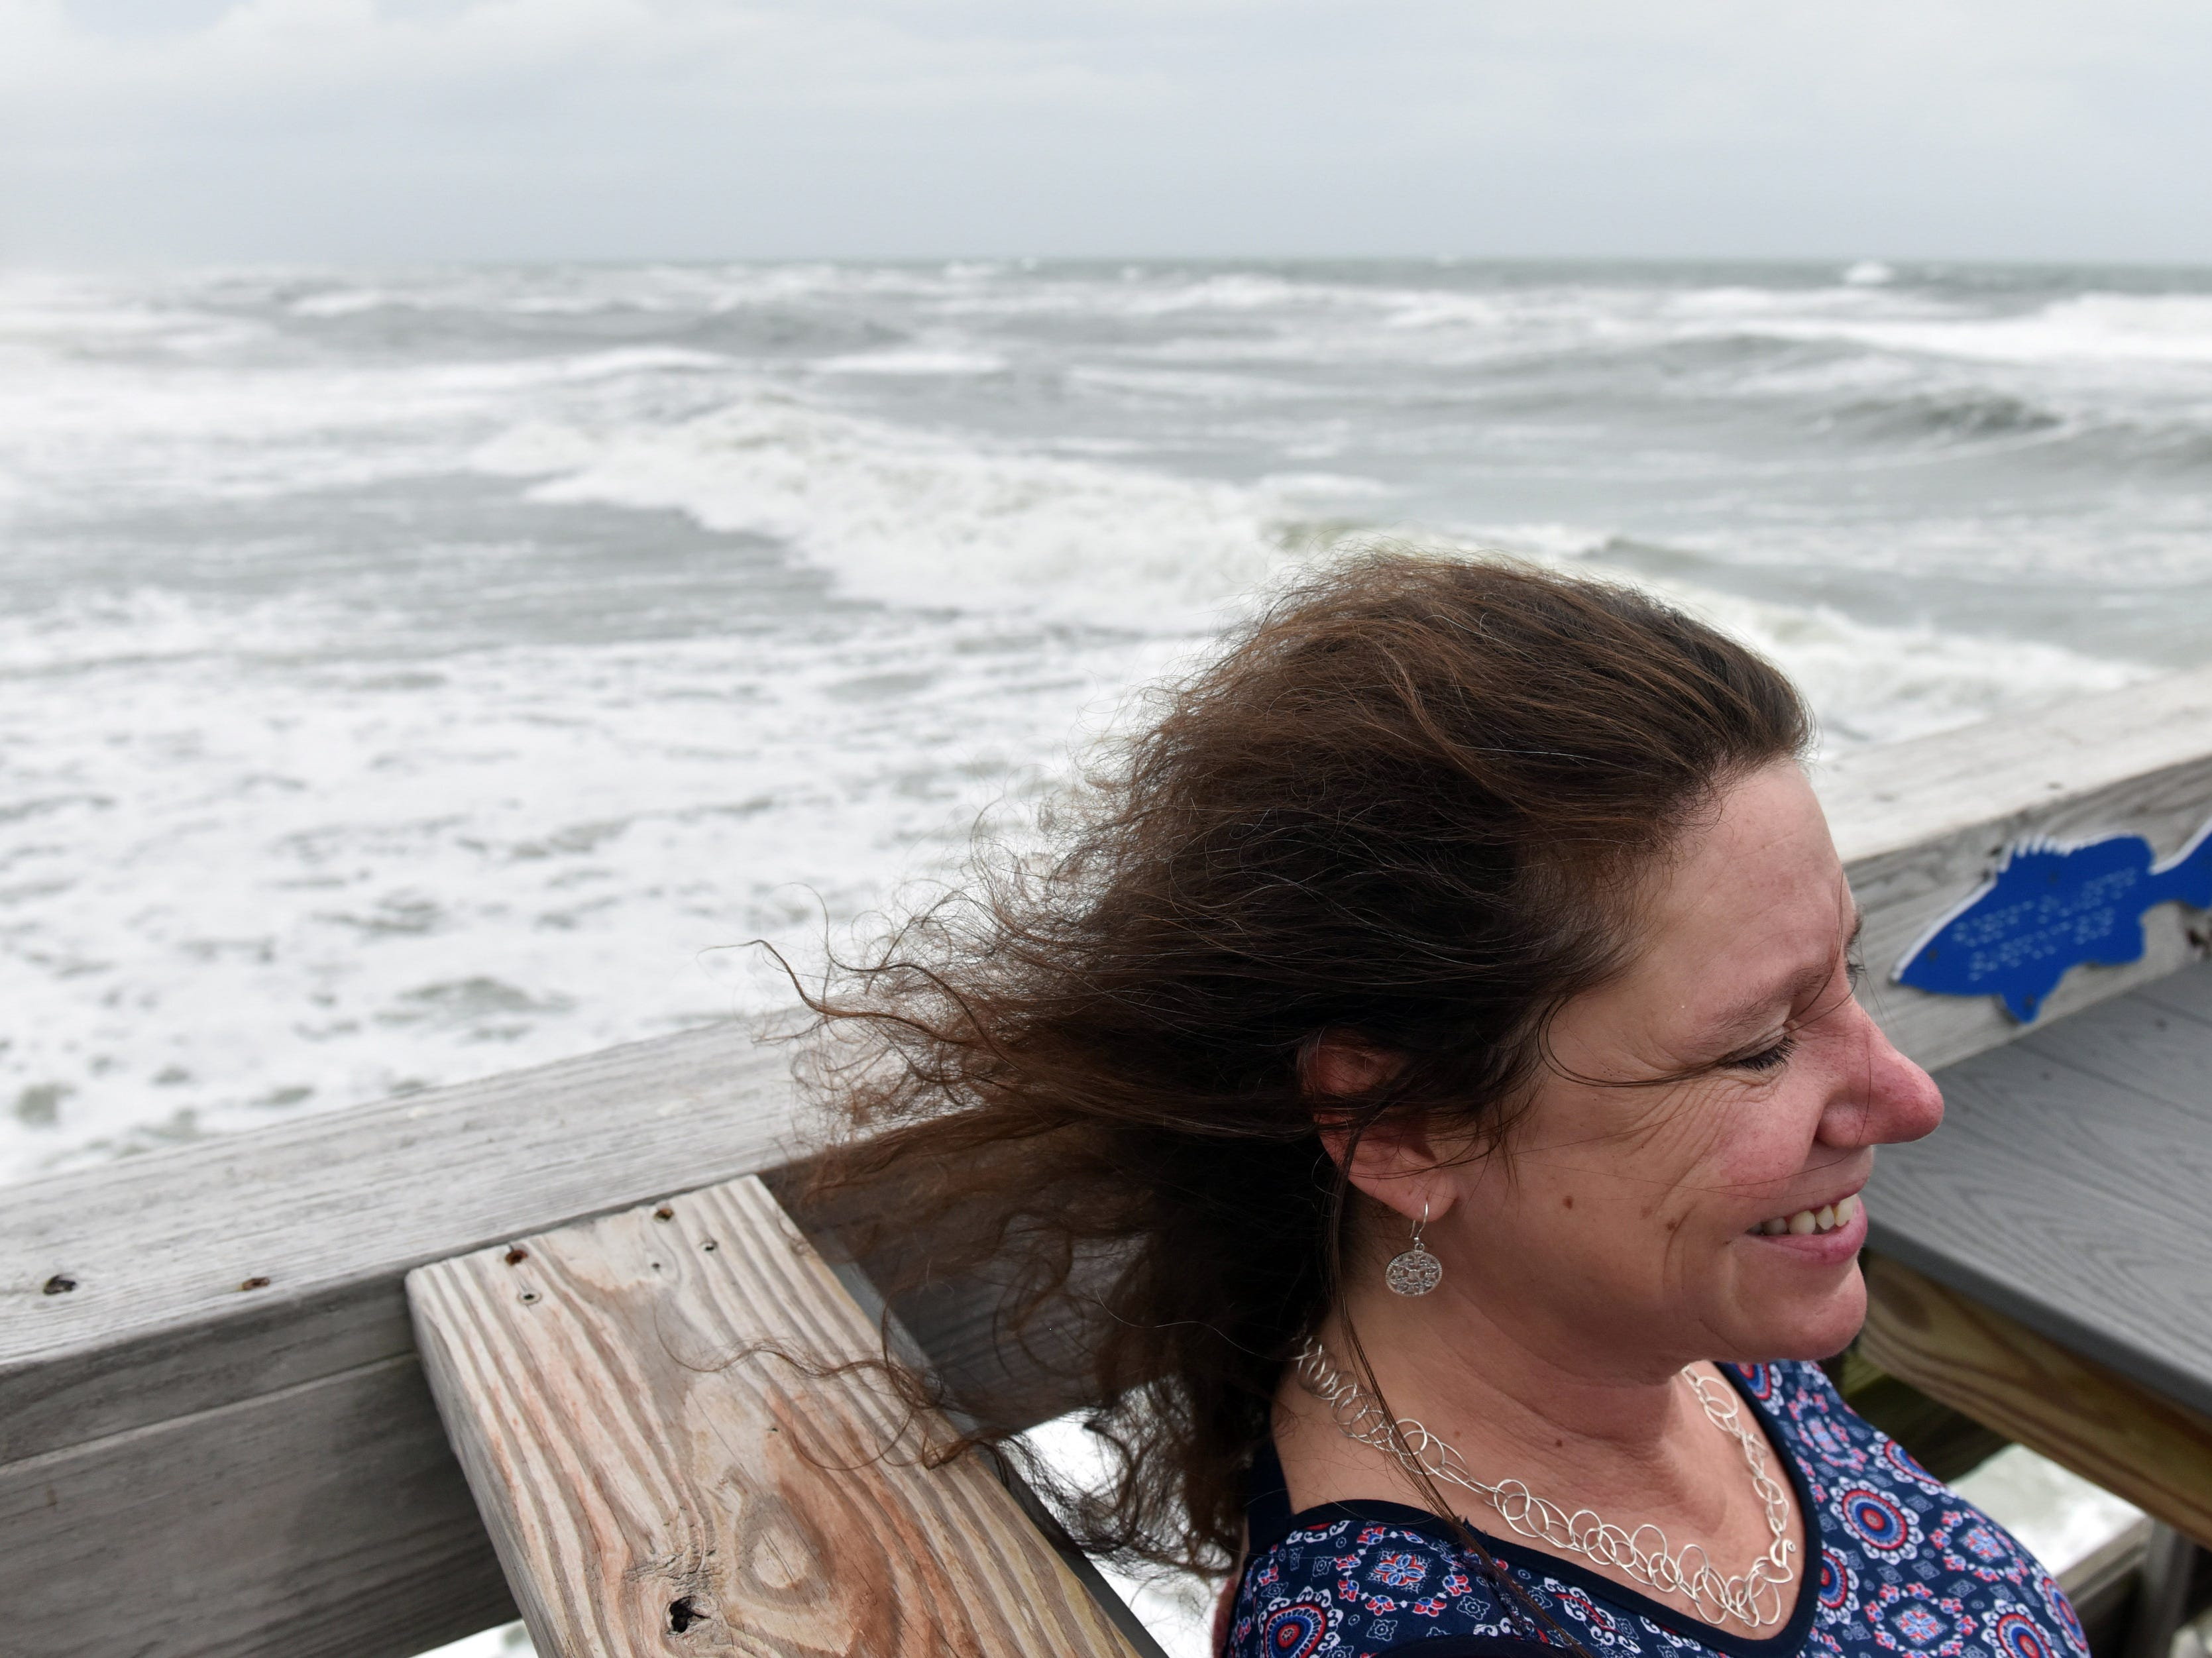 September 14, 2018; Outer Banks, NC, USA; Melody Glidewell, of Kill Devil Hills, N.C., watches the waves crash on shore from the Avalon Fishing Pier in the Outer banks on Friday morning September 14, 2018.